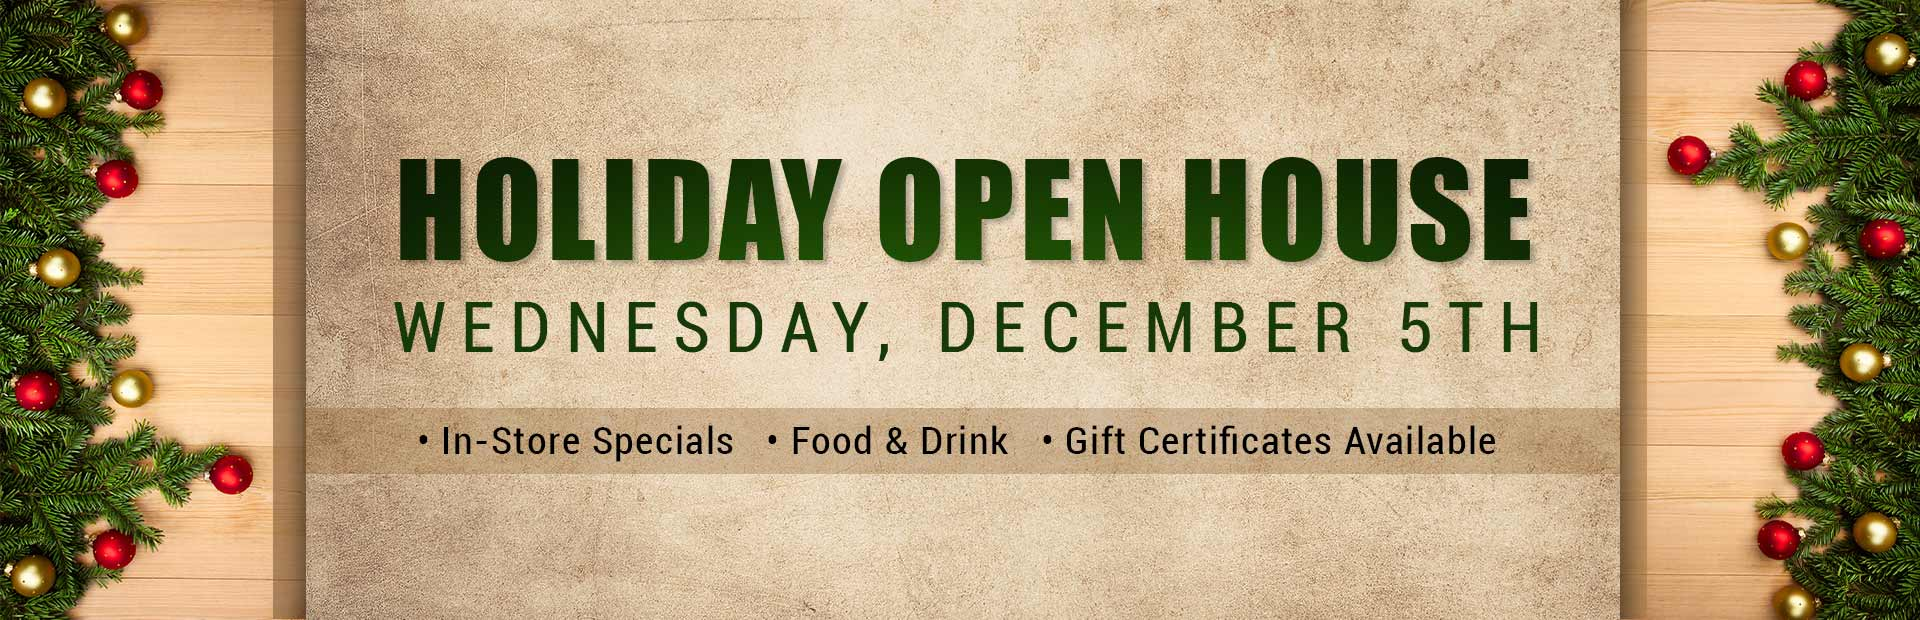 Join us Wednesday, December 5th for our Holiday Open House! Contact us for details.